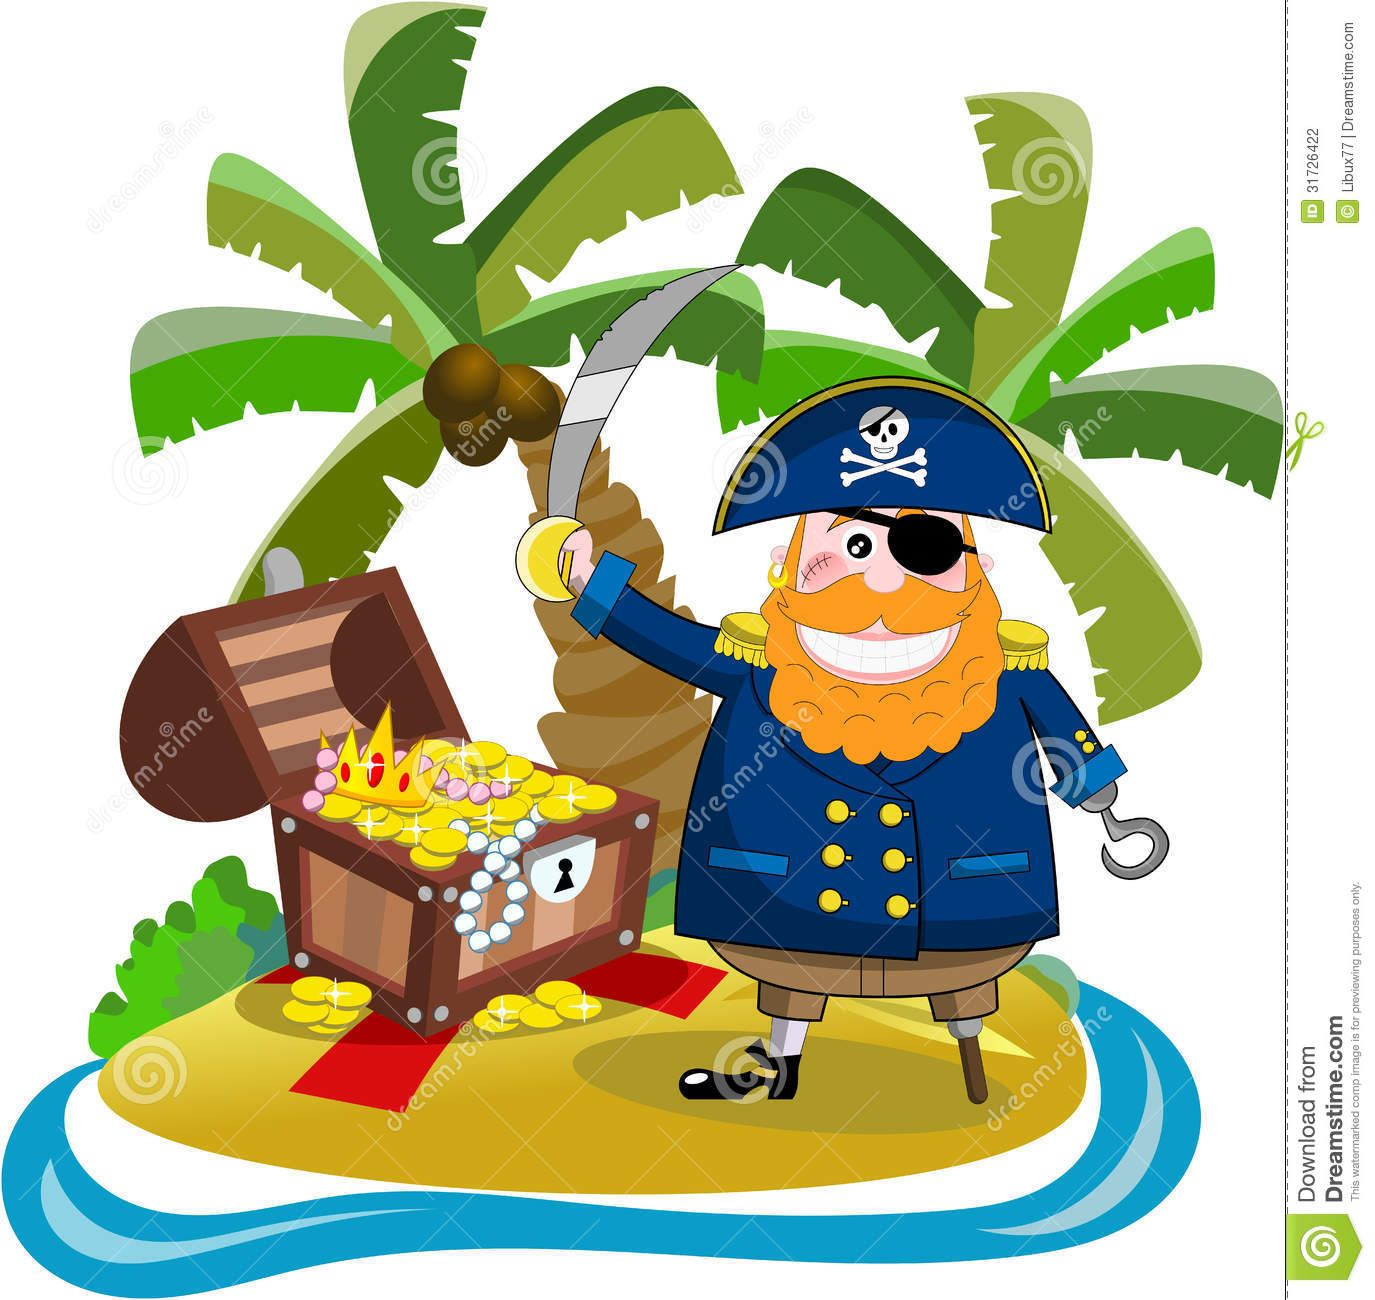 pirate found his treasure treasure island cartoon holding sabre pirate found his treasure treasure island cartoon holding